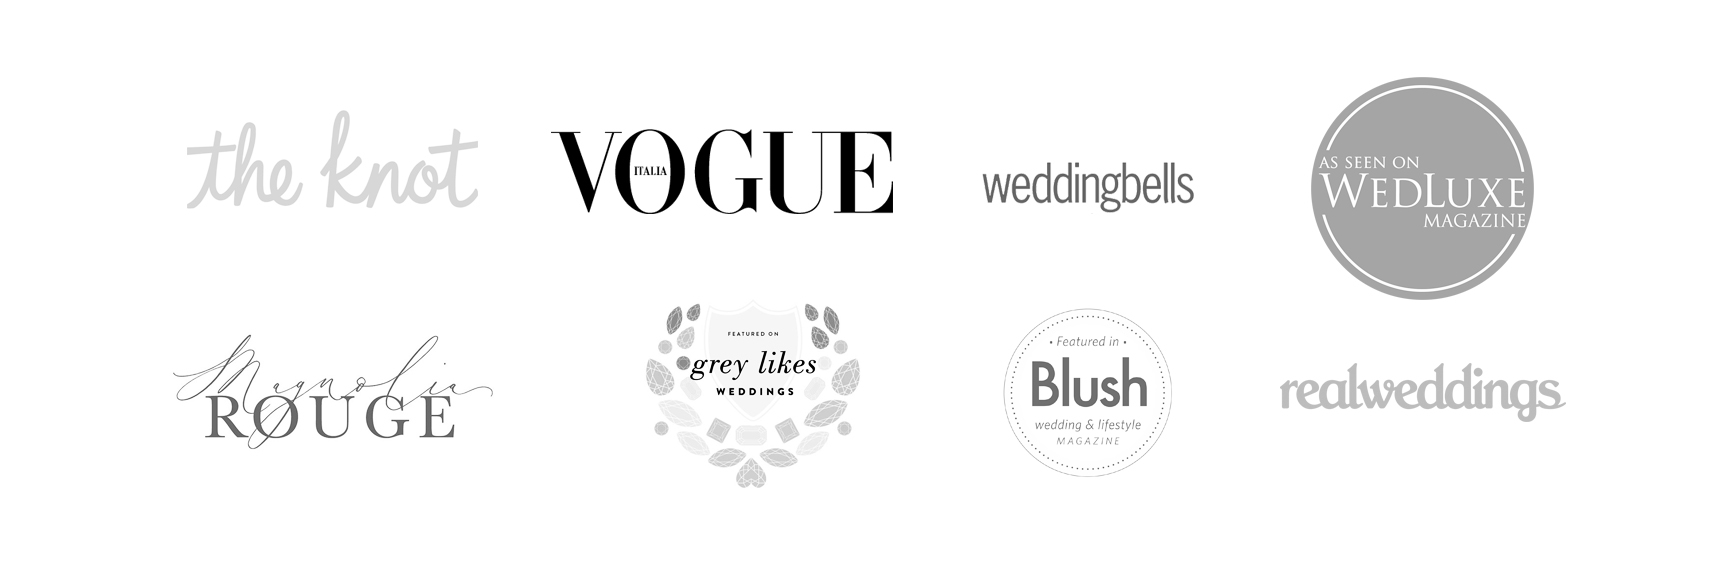 Beige Weddings Magazine Logo-2019.jpg